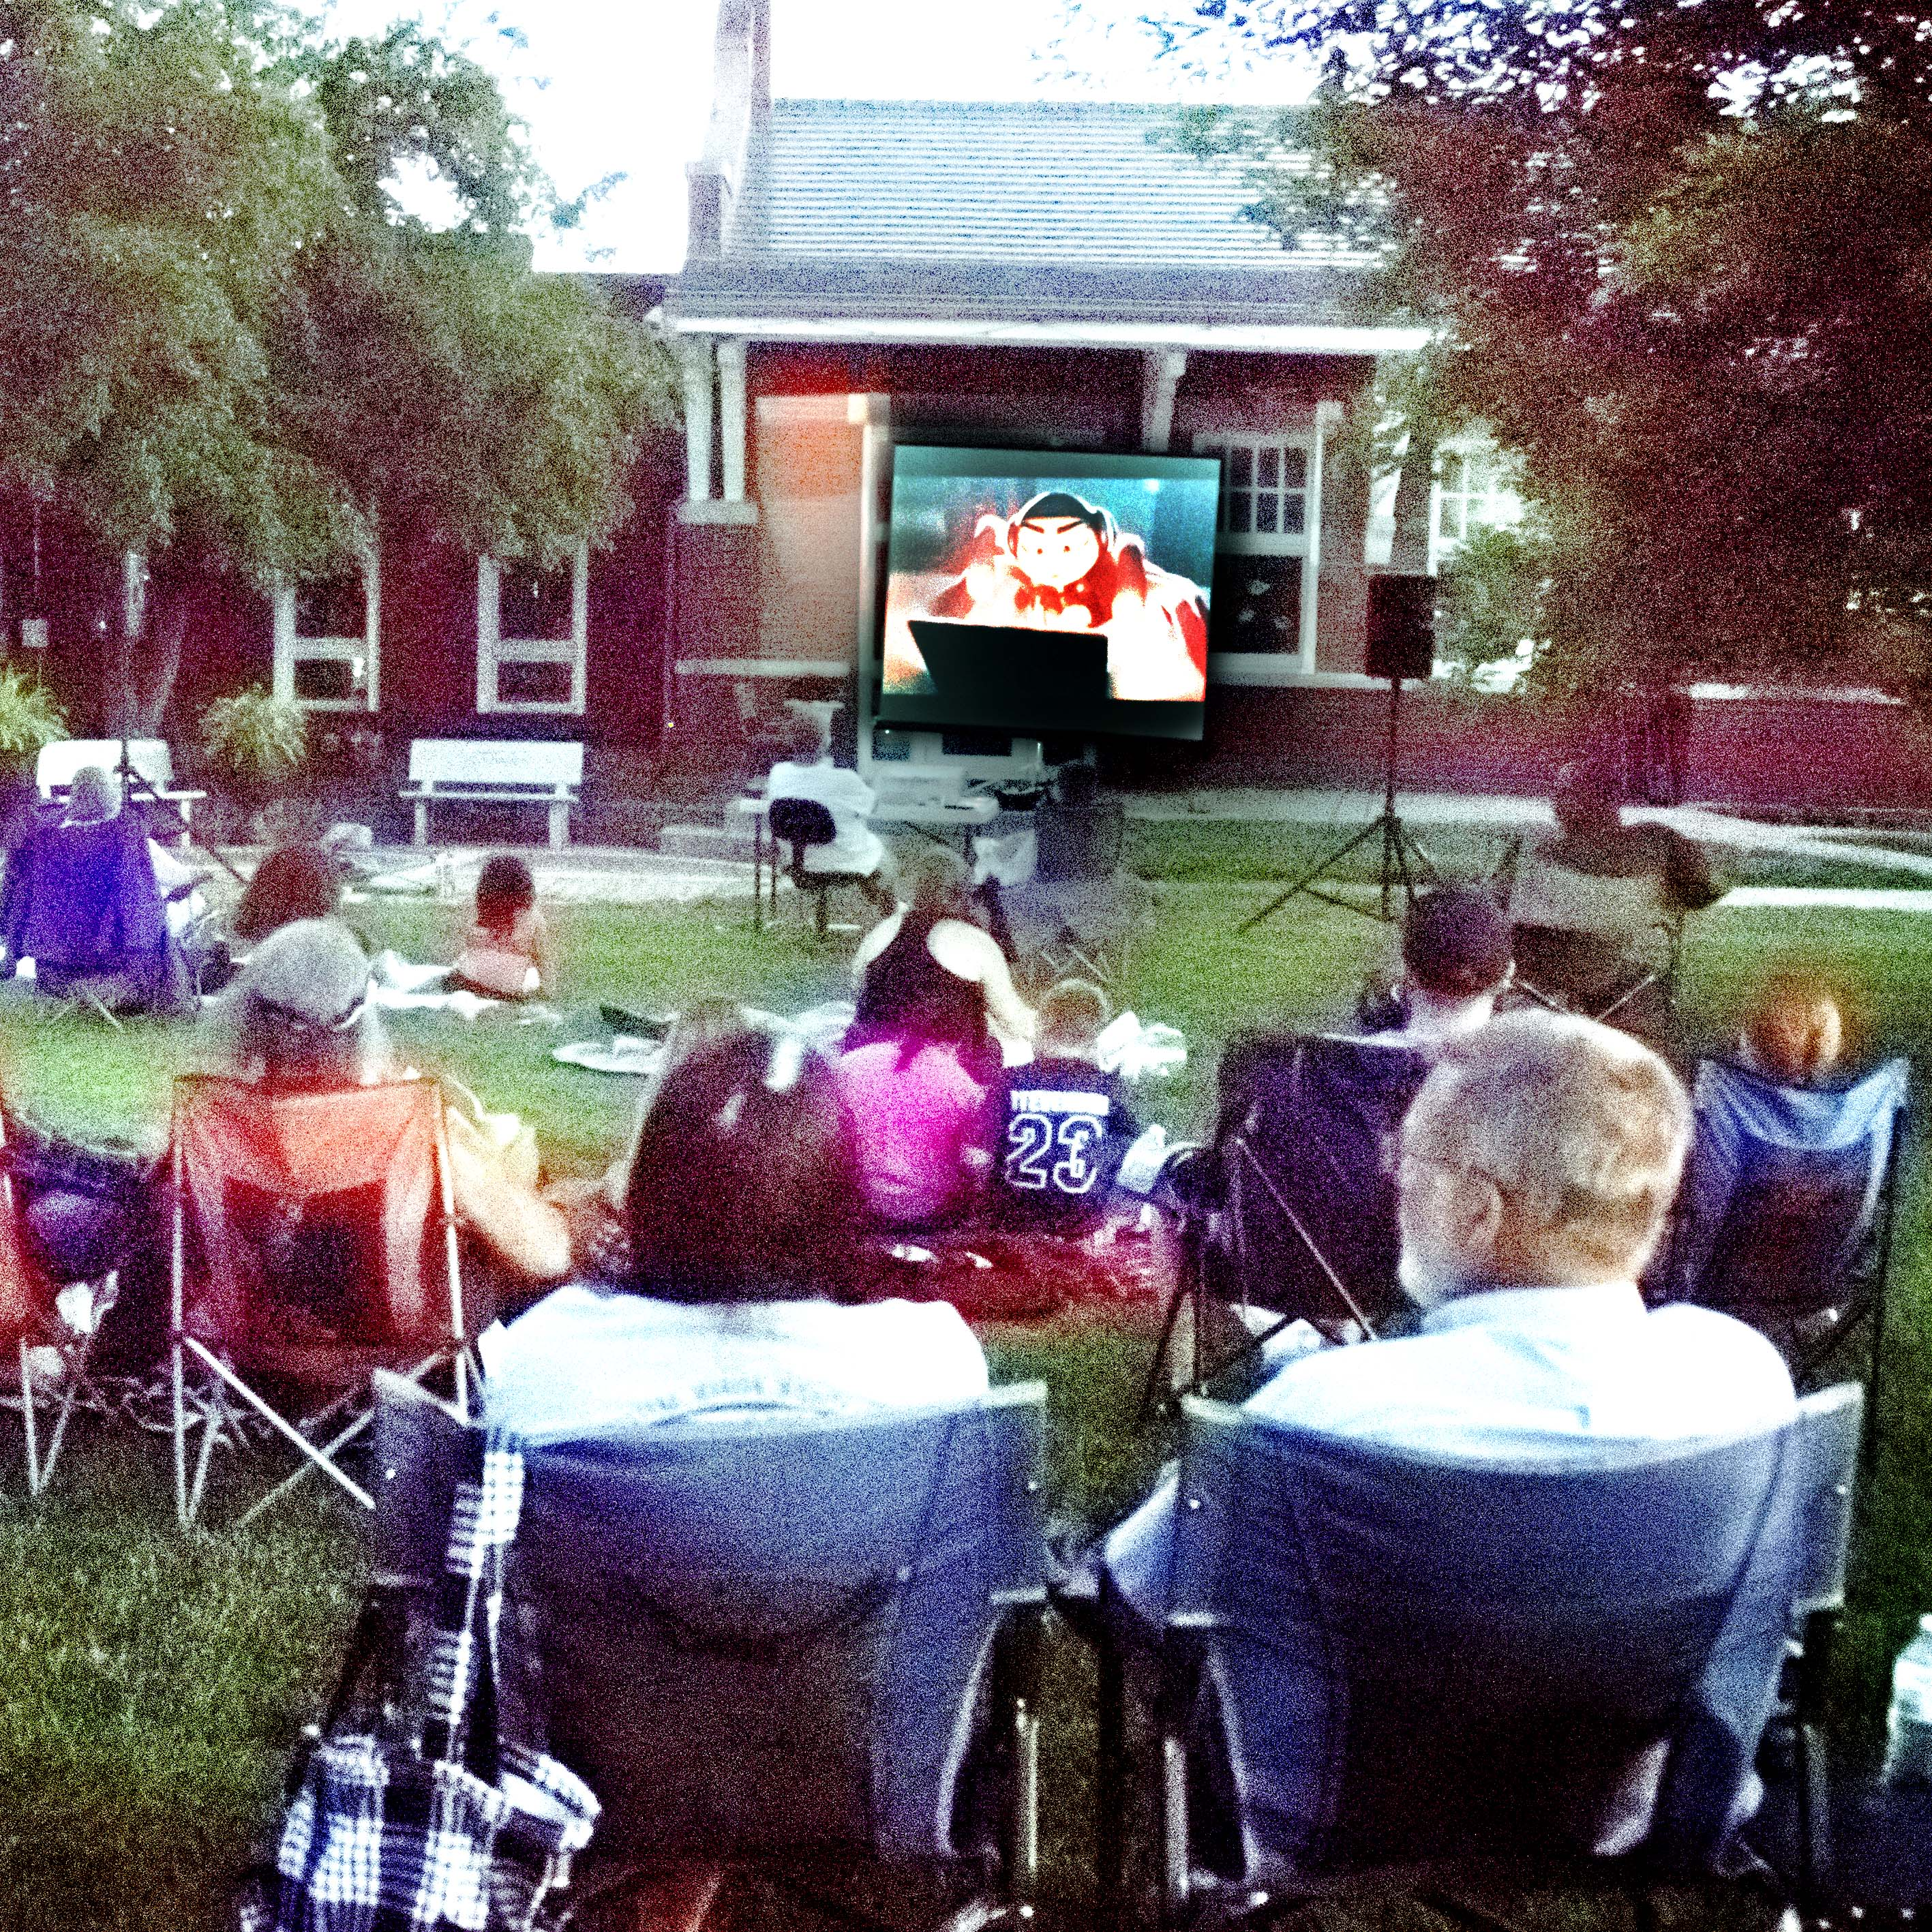 The Goessel volleyball team breezed through the competition at the Wheat State League tournament Saturday at Centre High School, winning every game it played by 10 or more points.